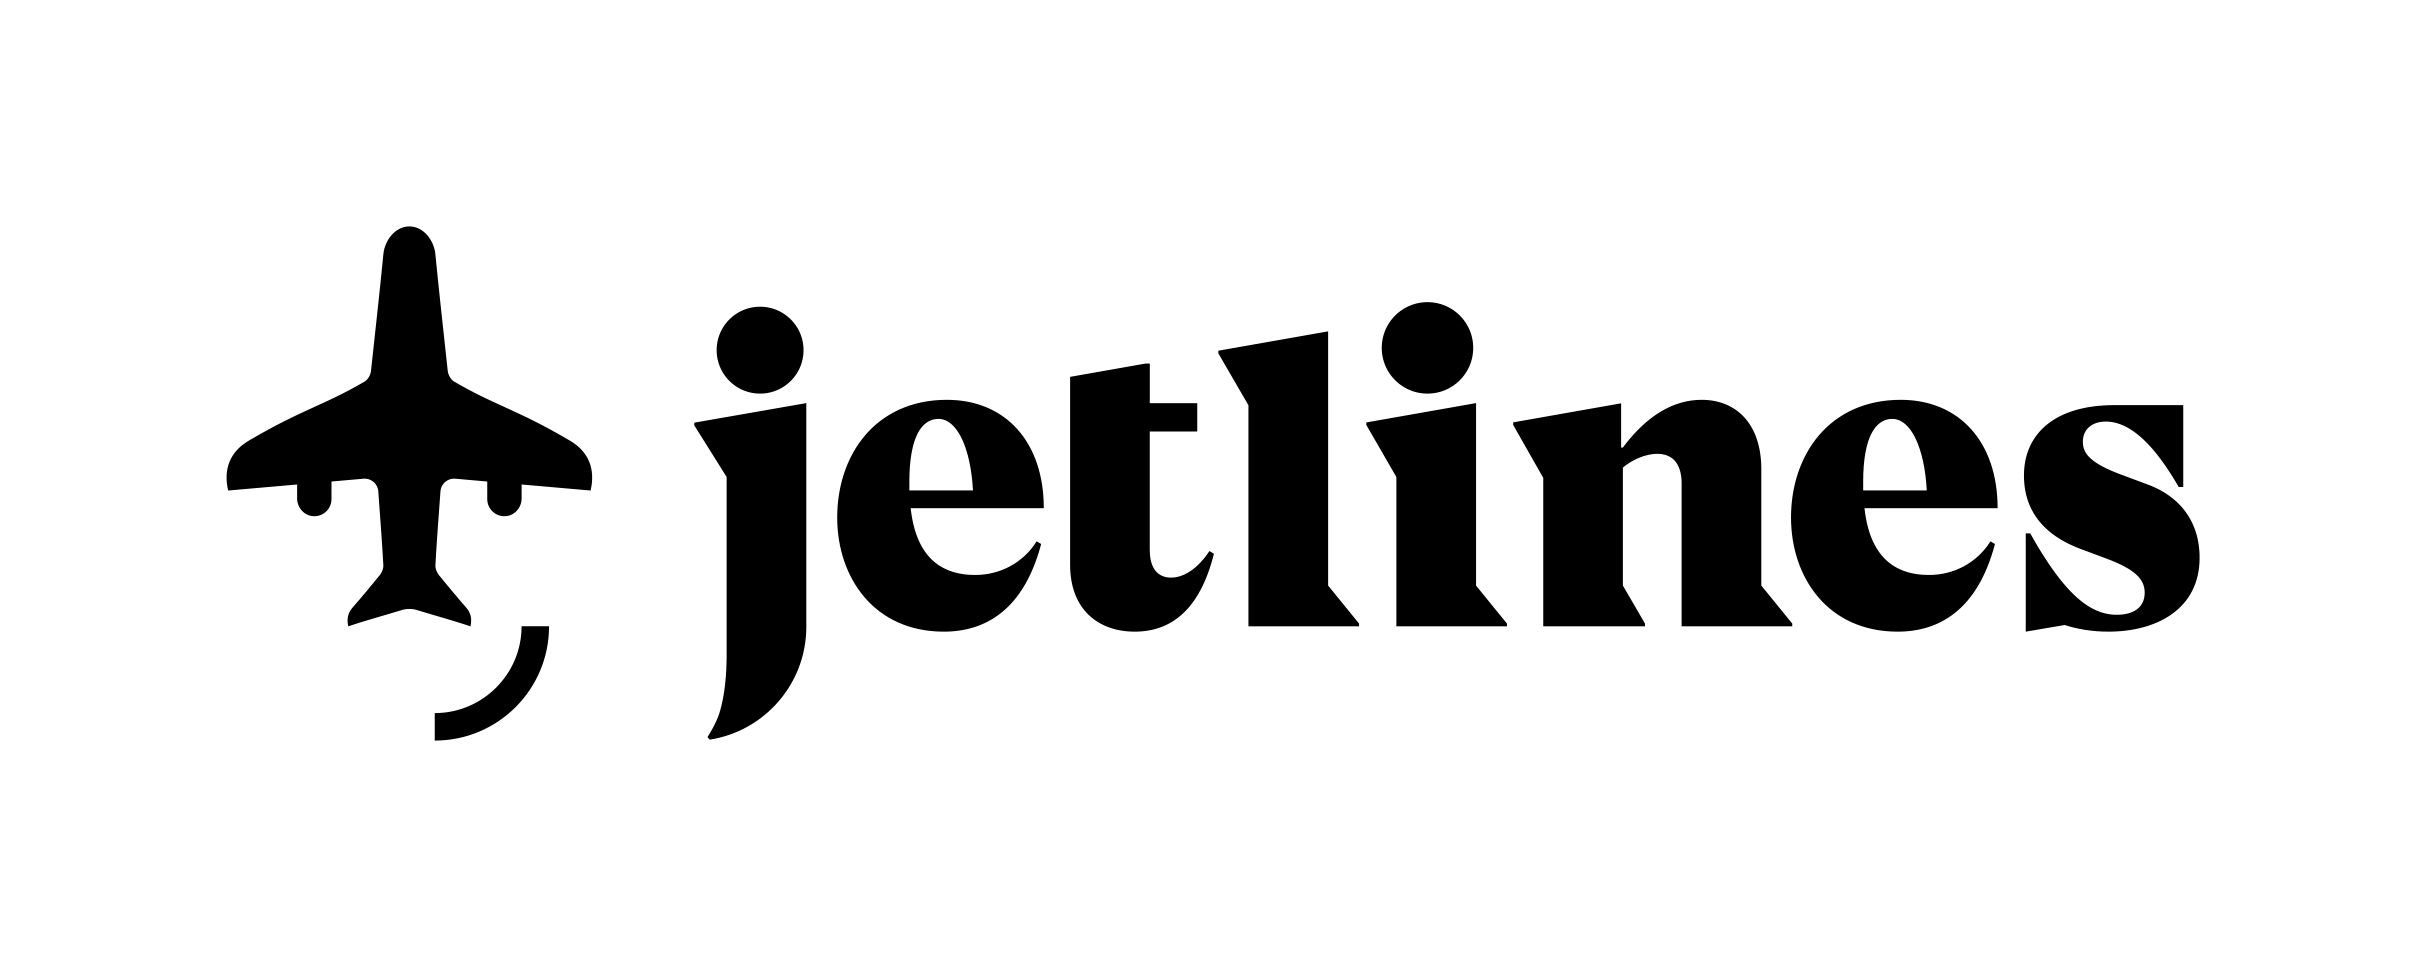 Jetlines loses SmartLynx and InHarv investments, postpones launch and reduces its activity until the Competition Bureau finalizes its WestJet investigation